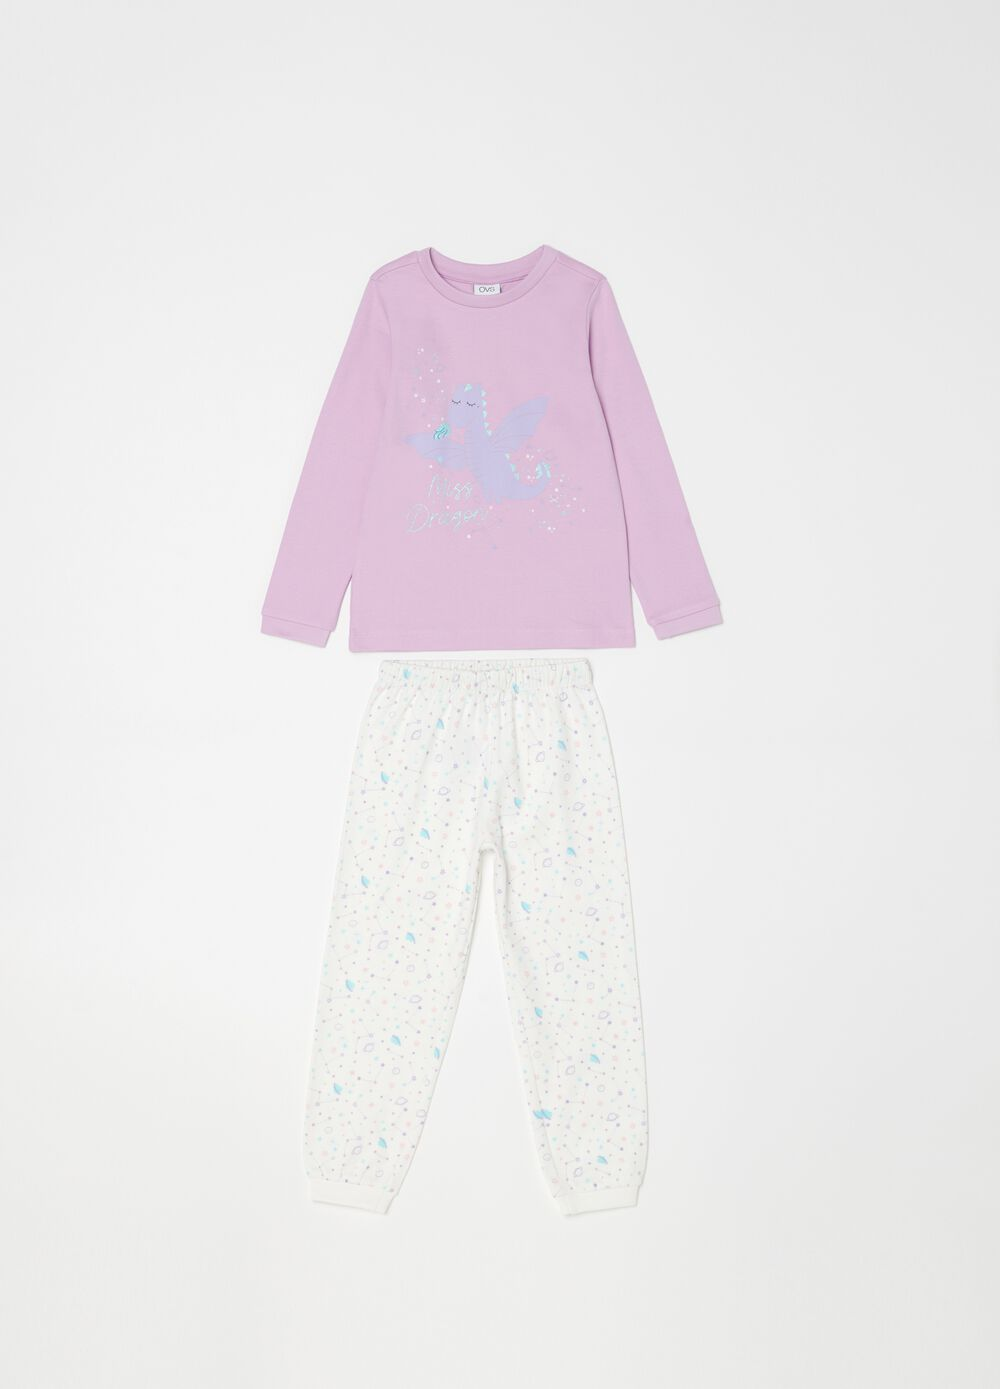 100% organic cotton pyjamas with dragon print